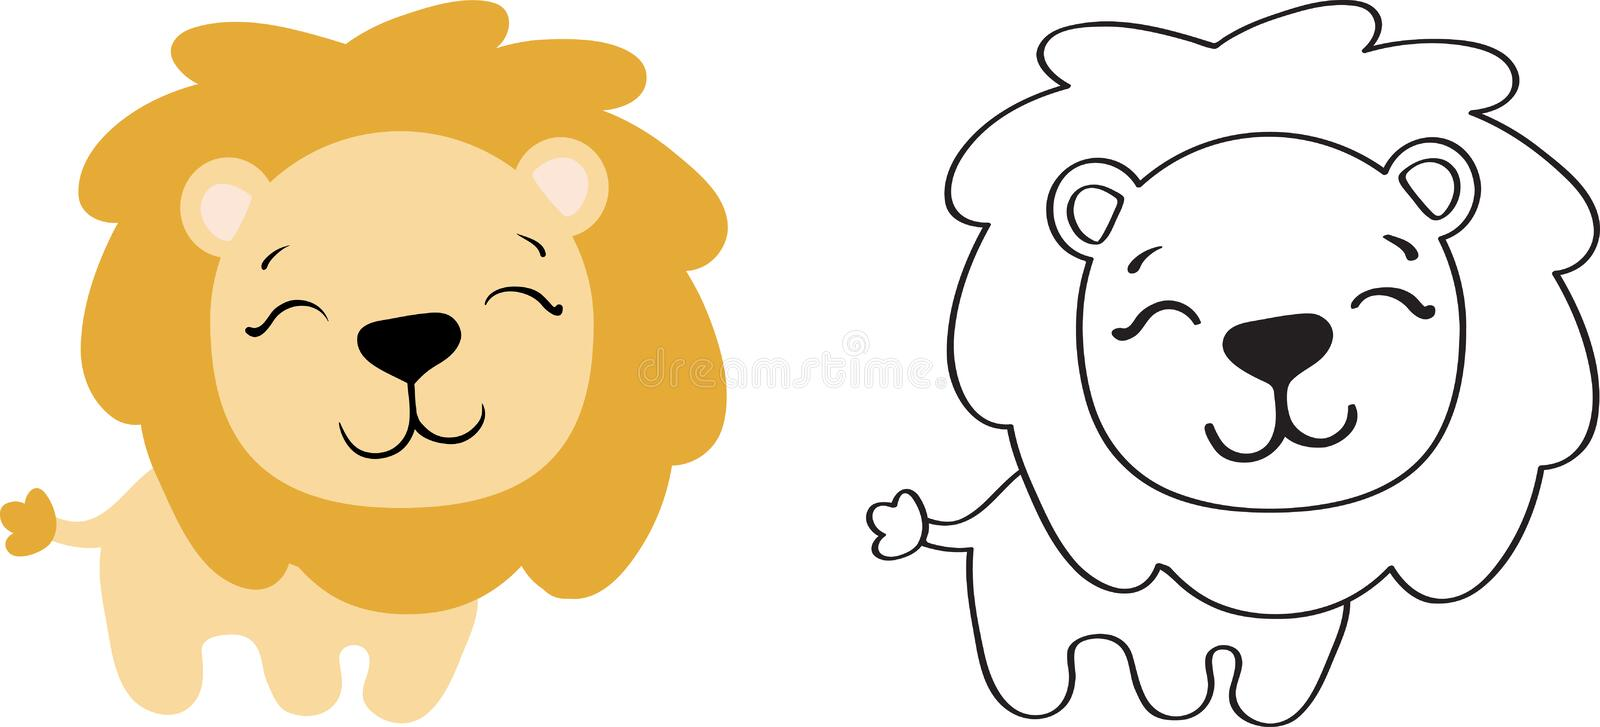 Drawing of a toy lion royalty free illustration